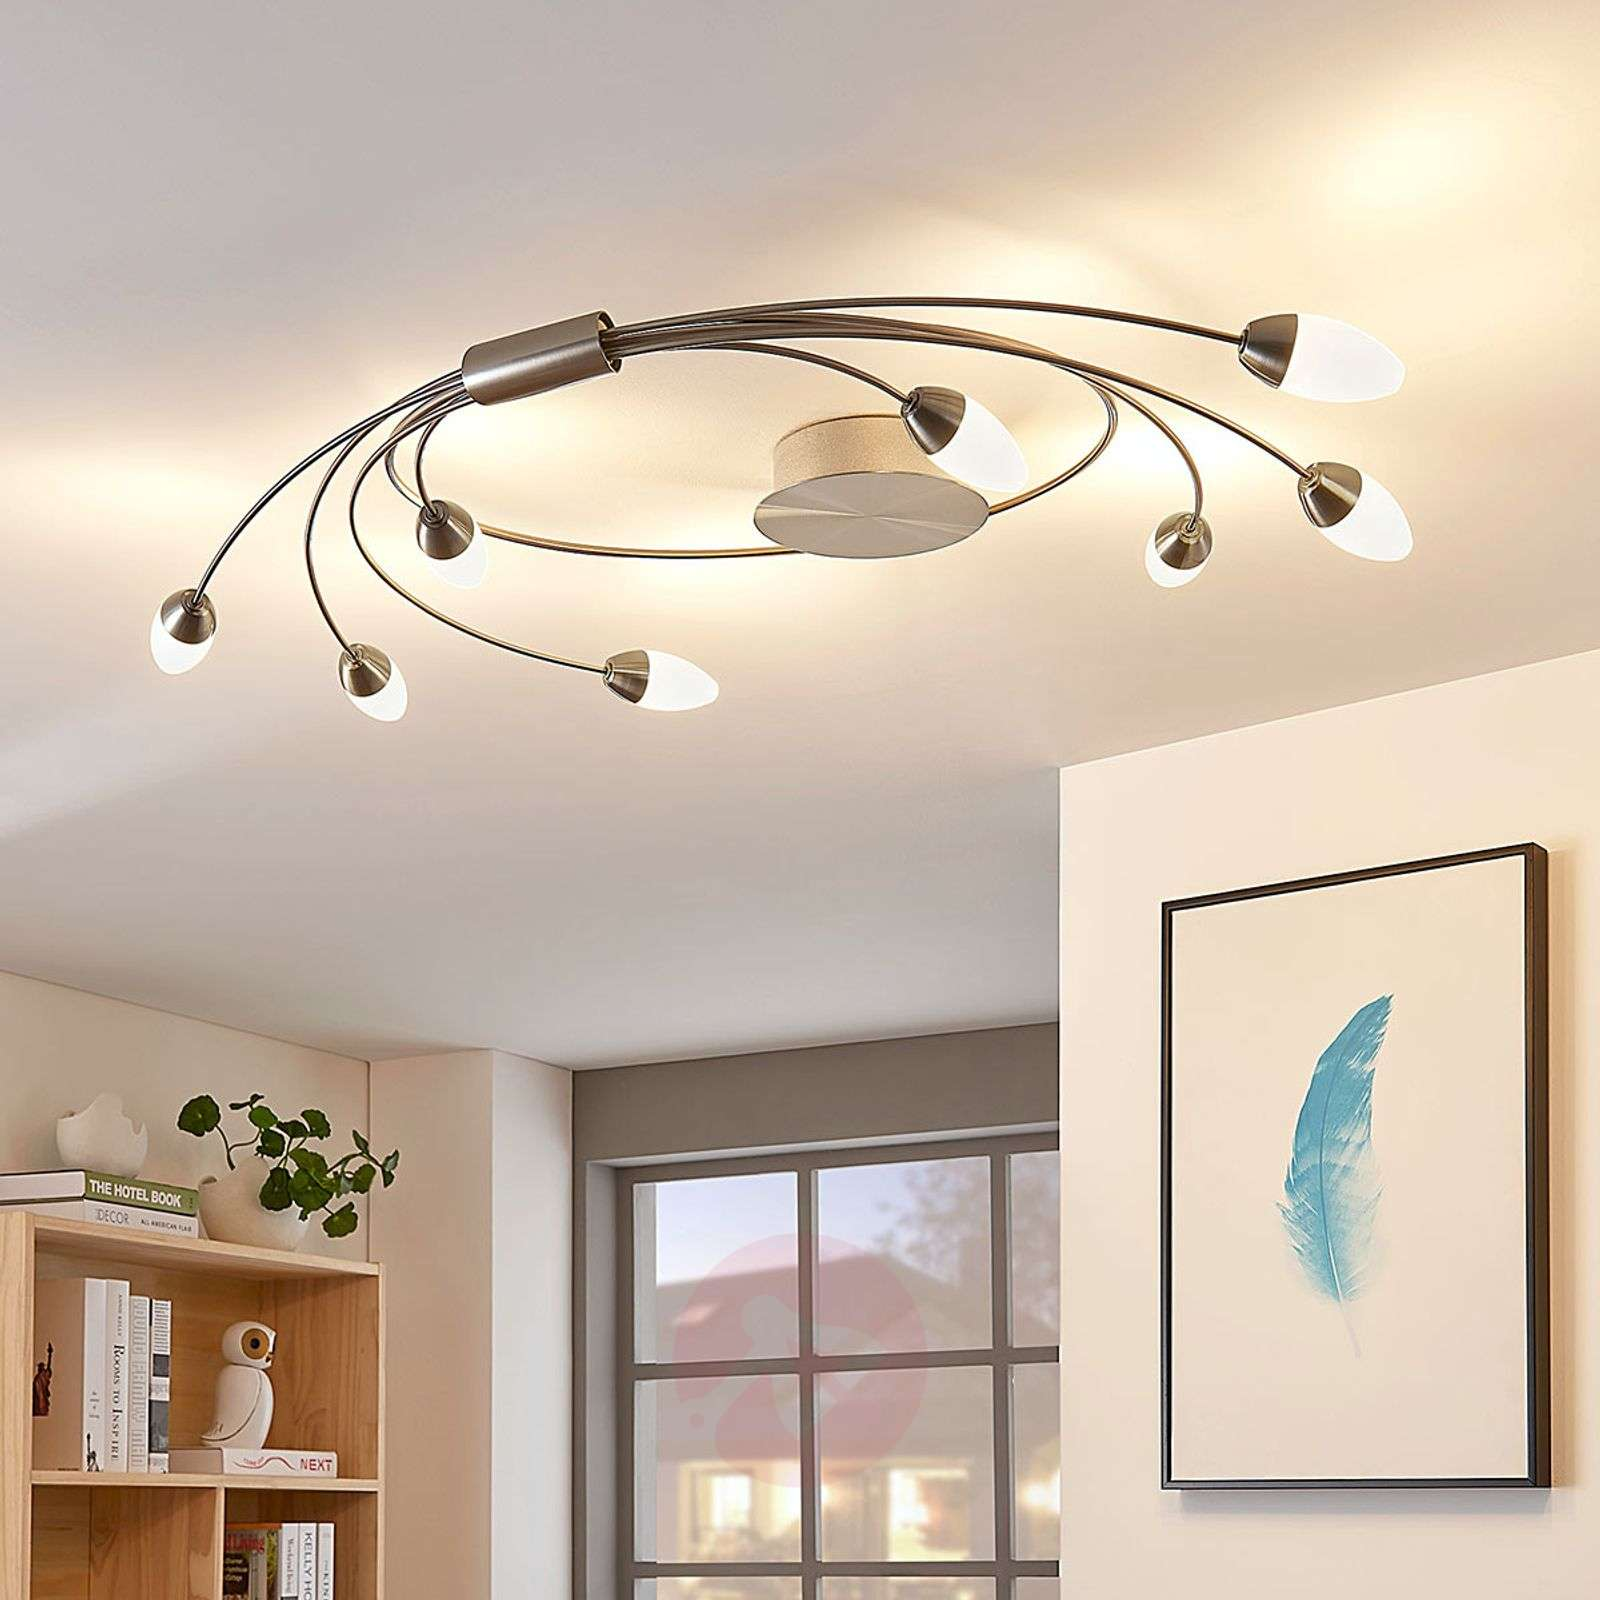 Plafonnier LED Deyan, dimmable, 8 lampes, rond-9621954-01